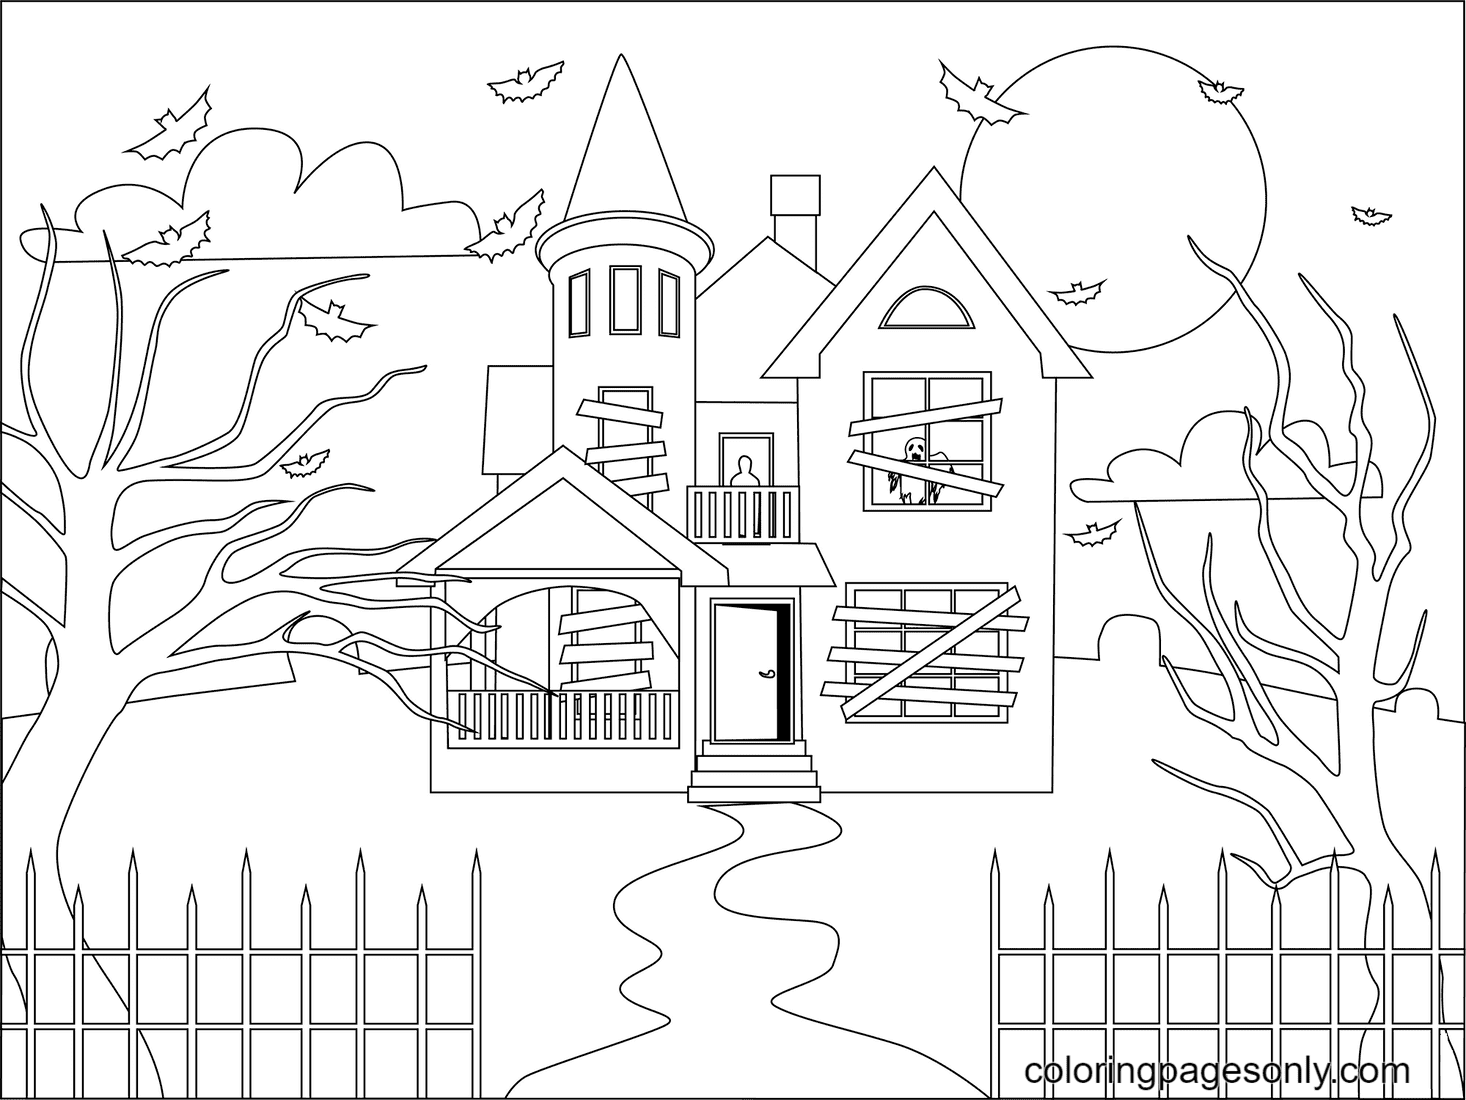 Bats Flying Around the Haunted House Coloring Page